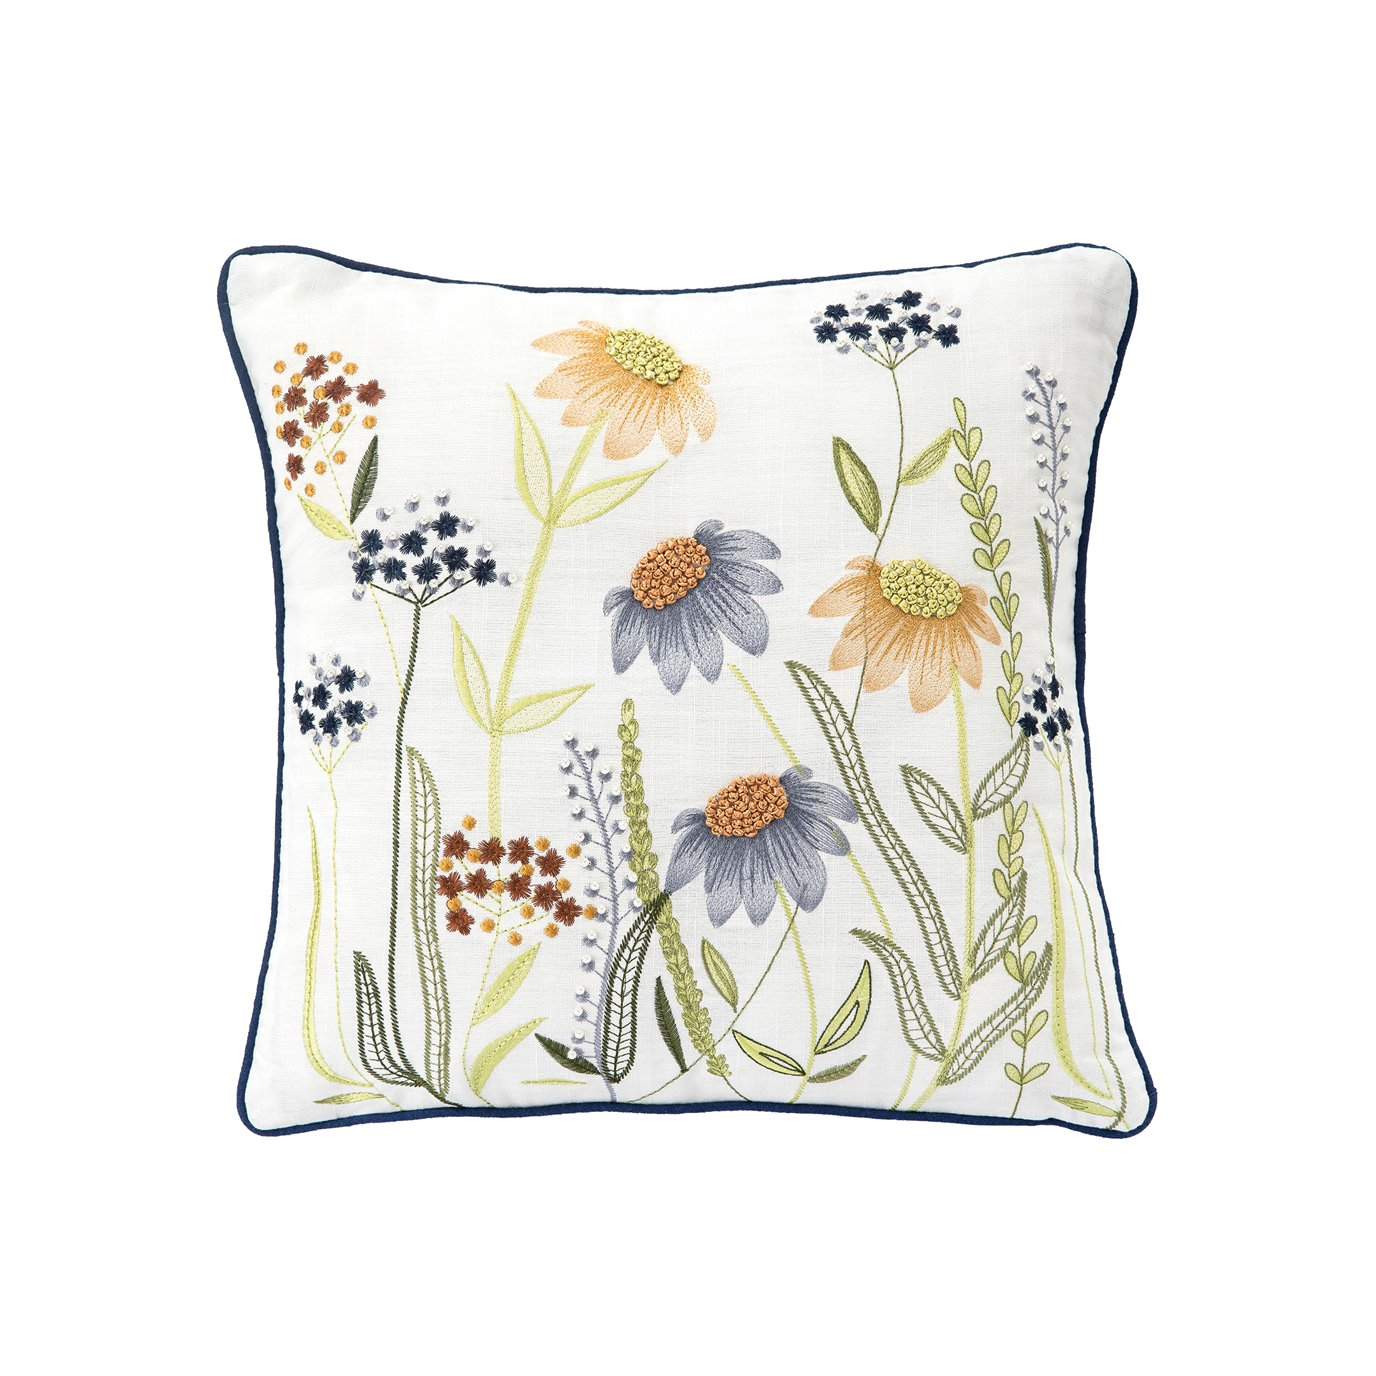 Embroidered Flower Field Pillow with French Knots